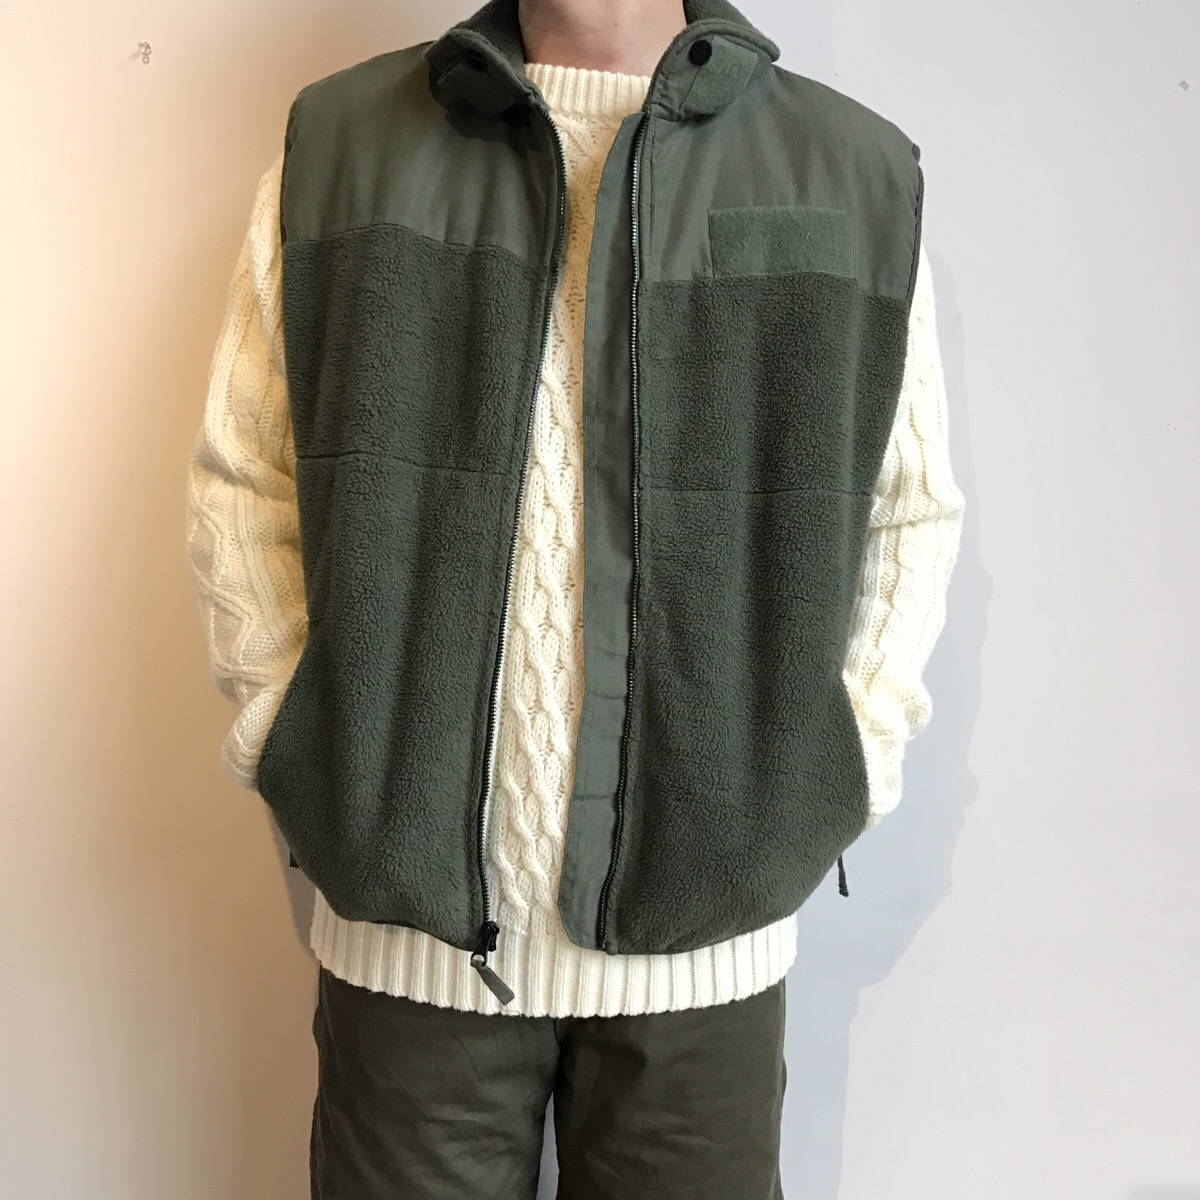 military fleece vest, cable sweater